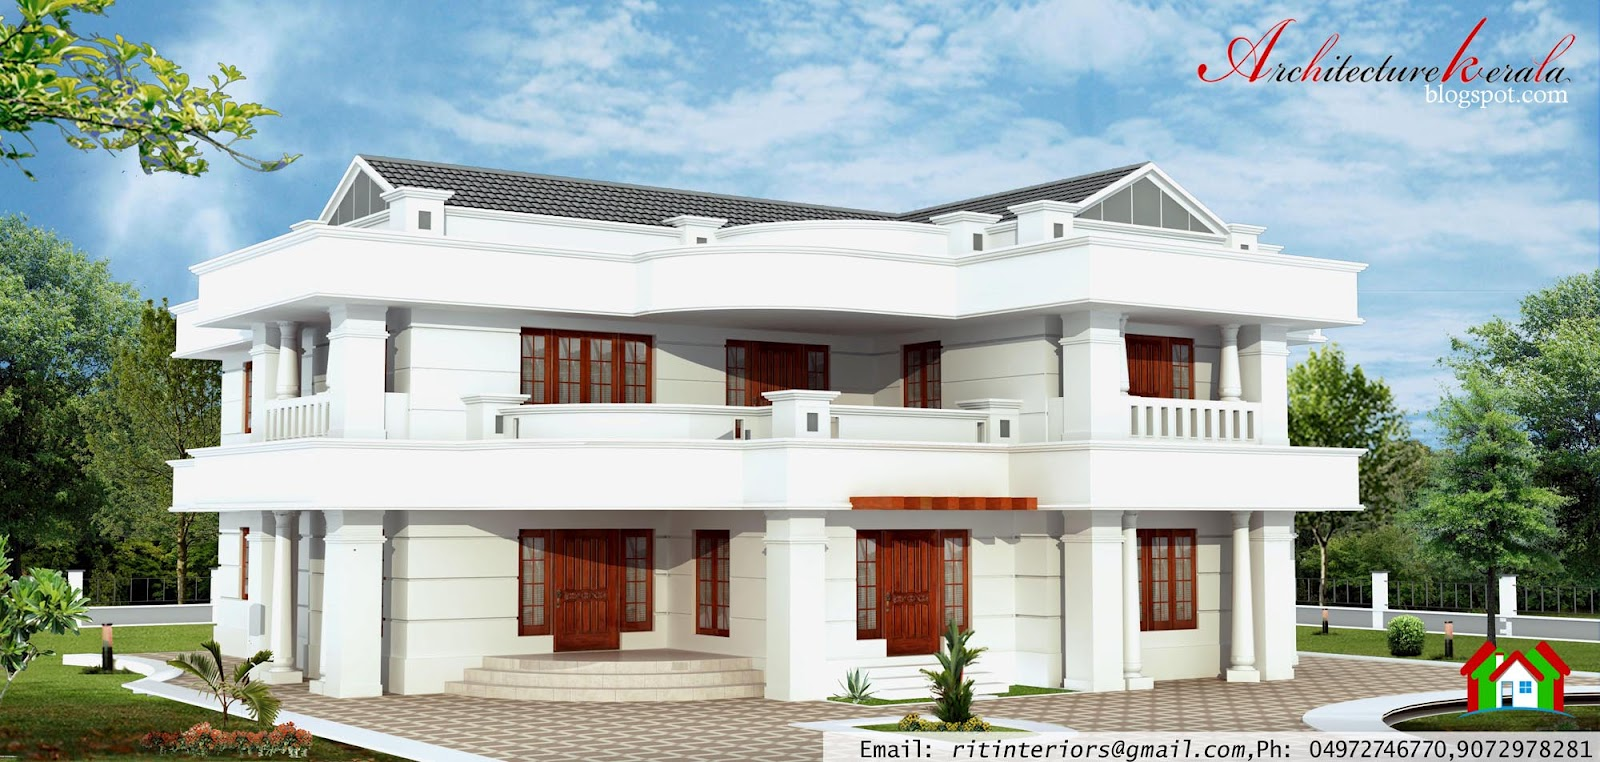 Architecture Kerala: 4 BEDROOM, LARGE KERALA HOUSE PLANS